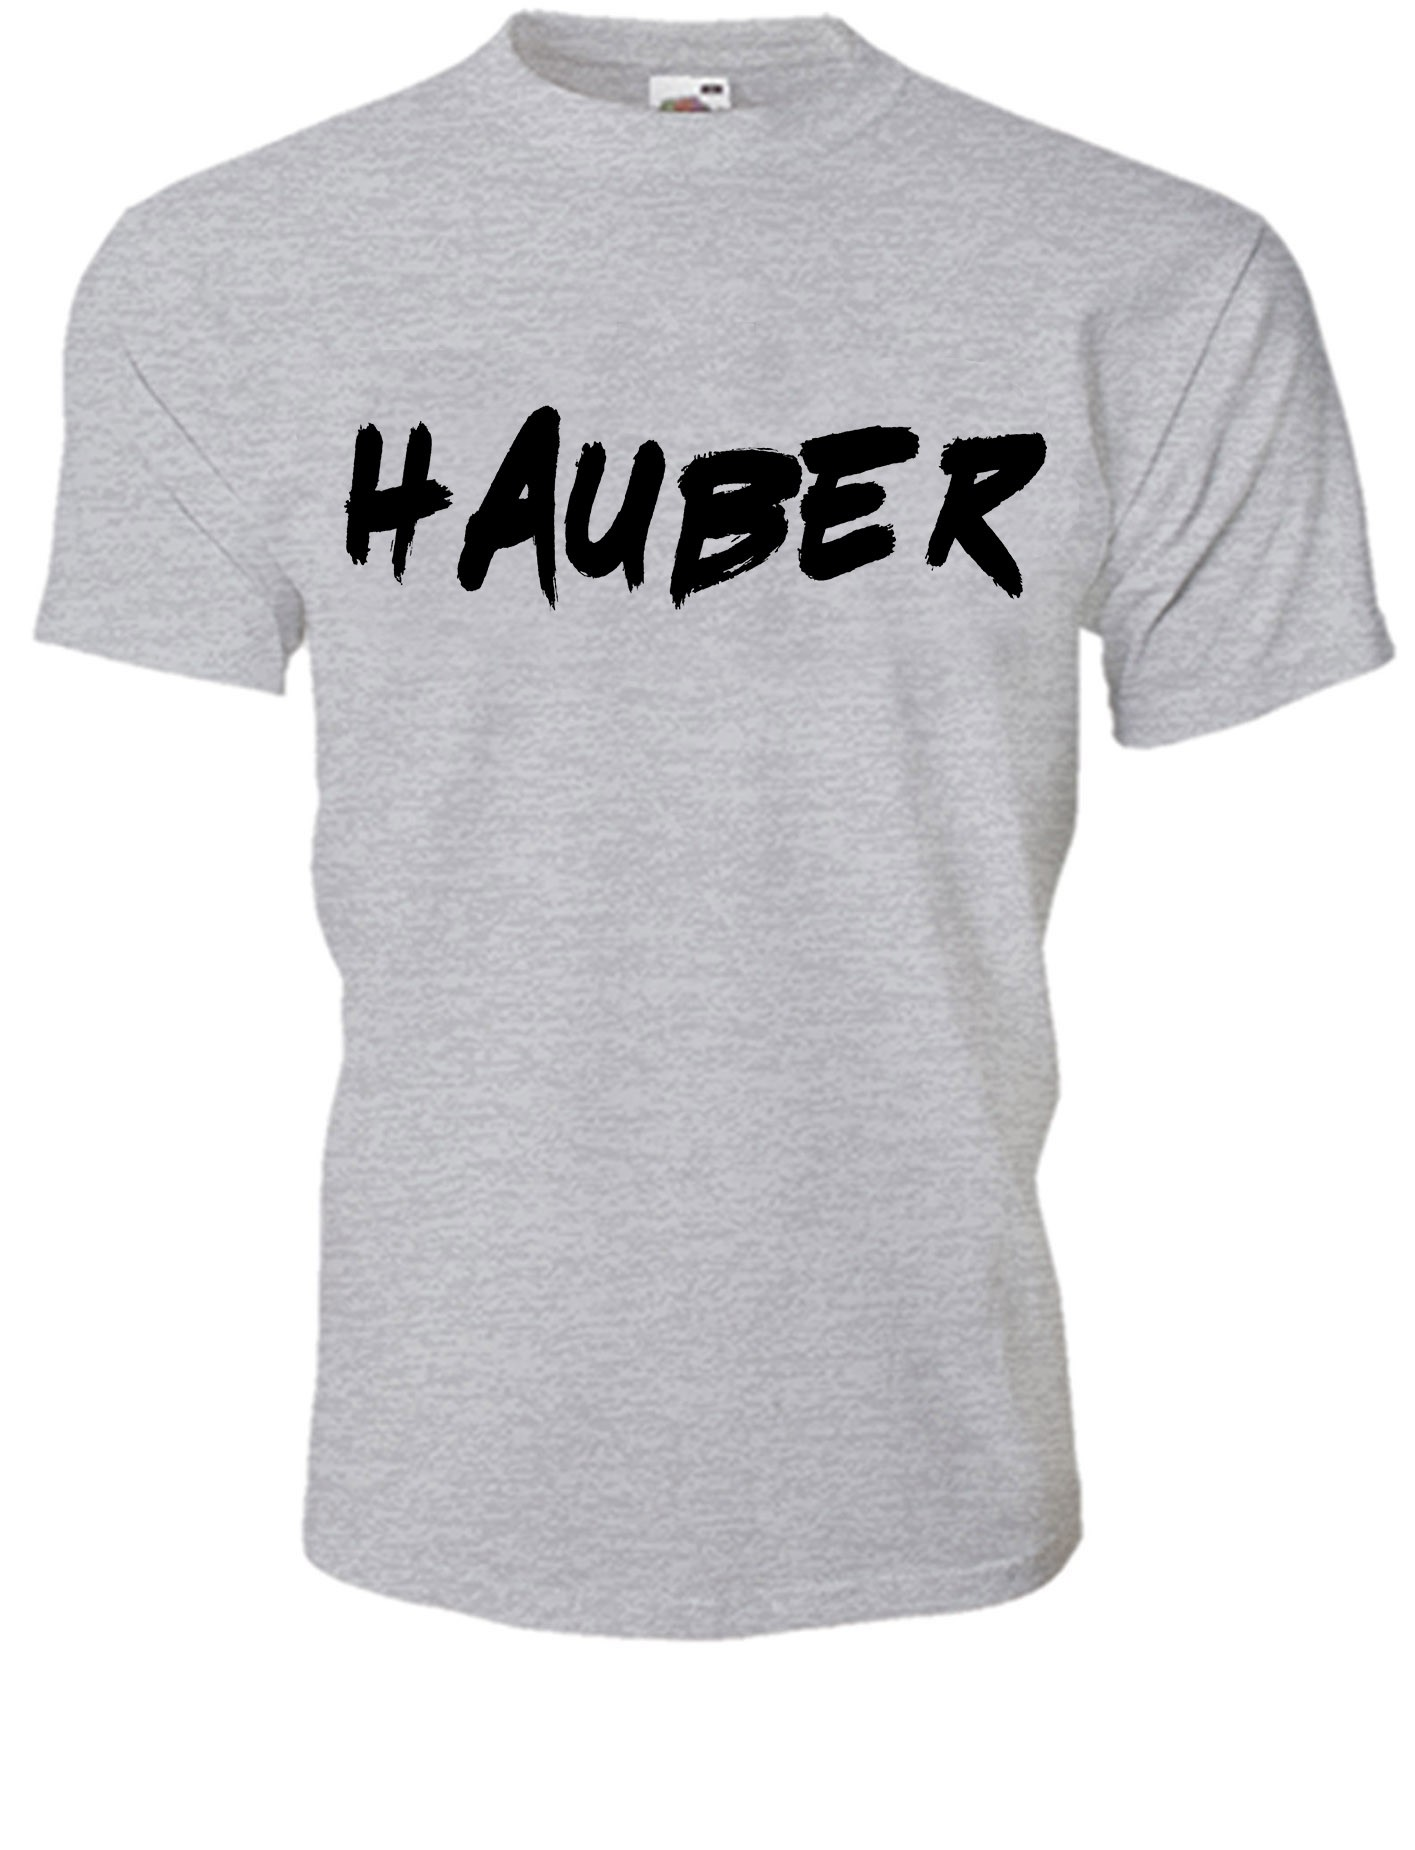 KIDS CREW NECK T-SHIRT HAUBER